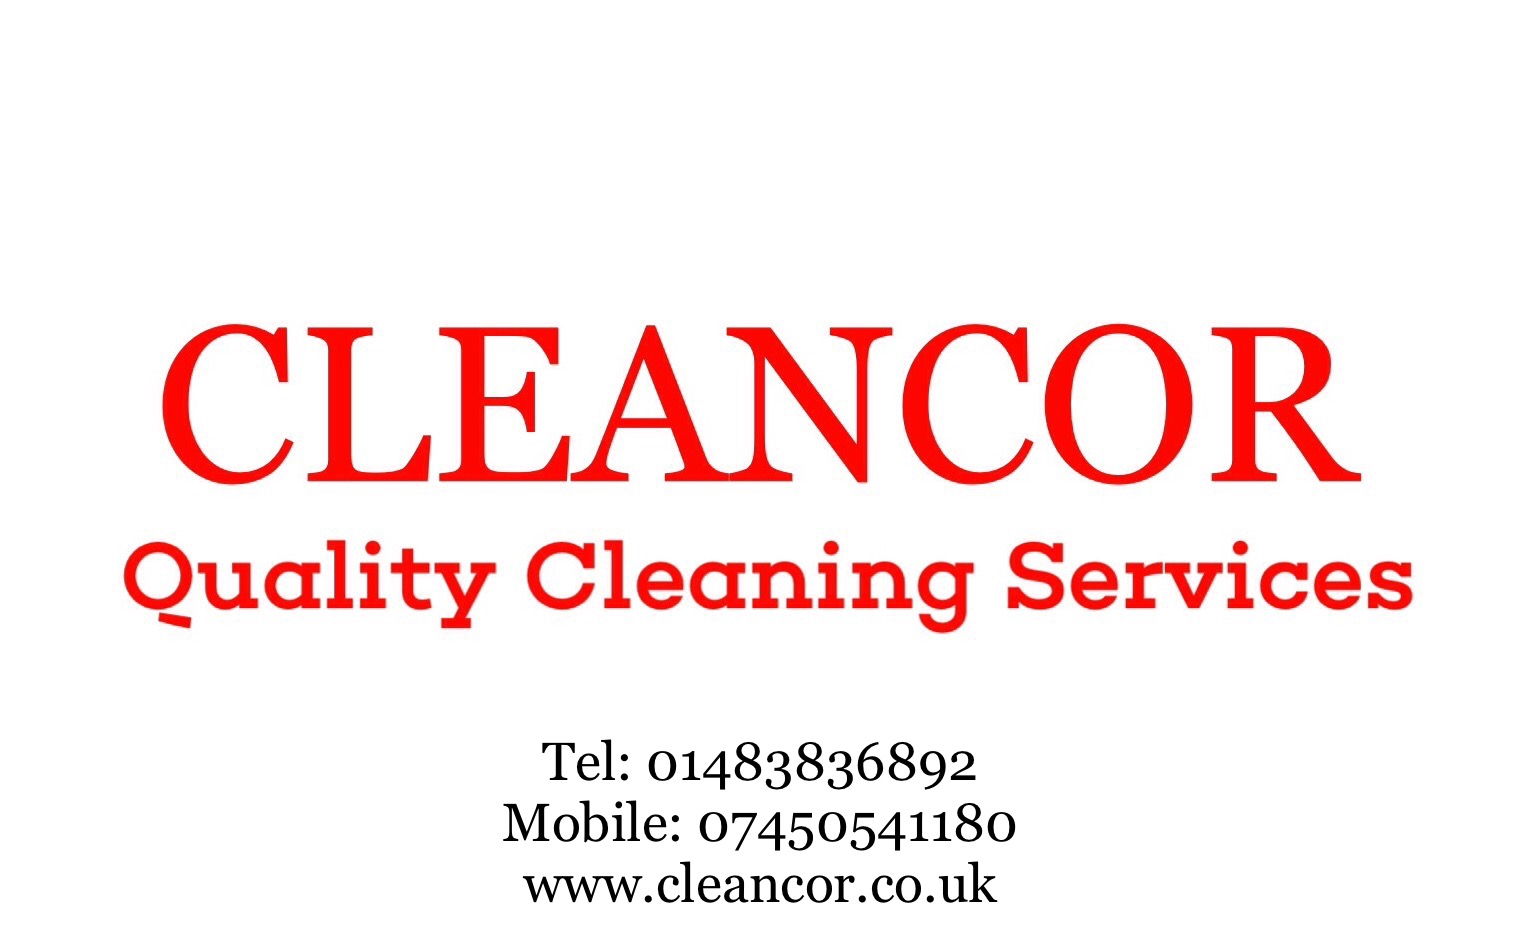 Cleancor Quality Cleaning Services